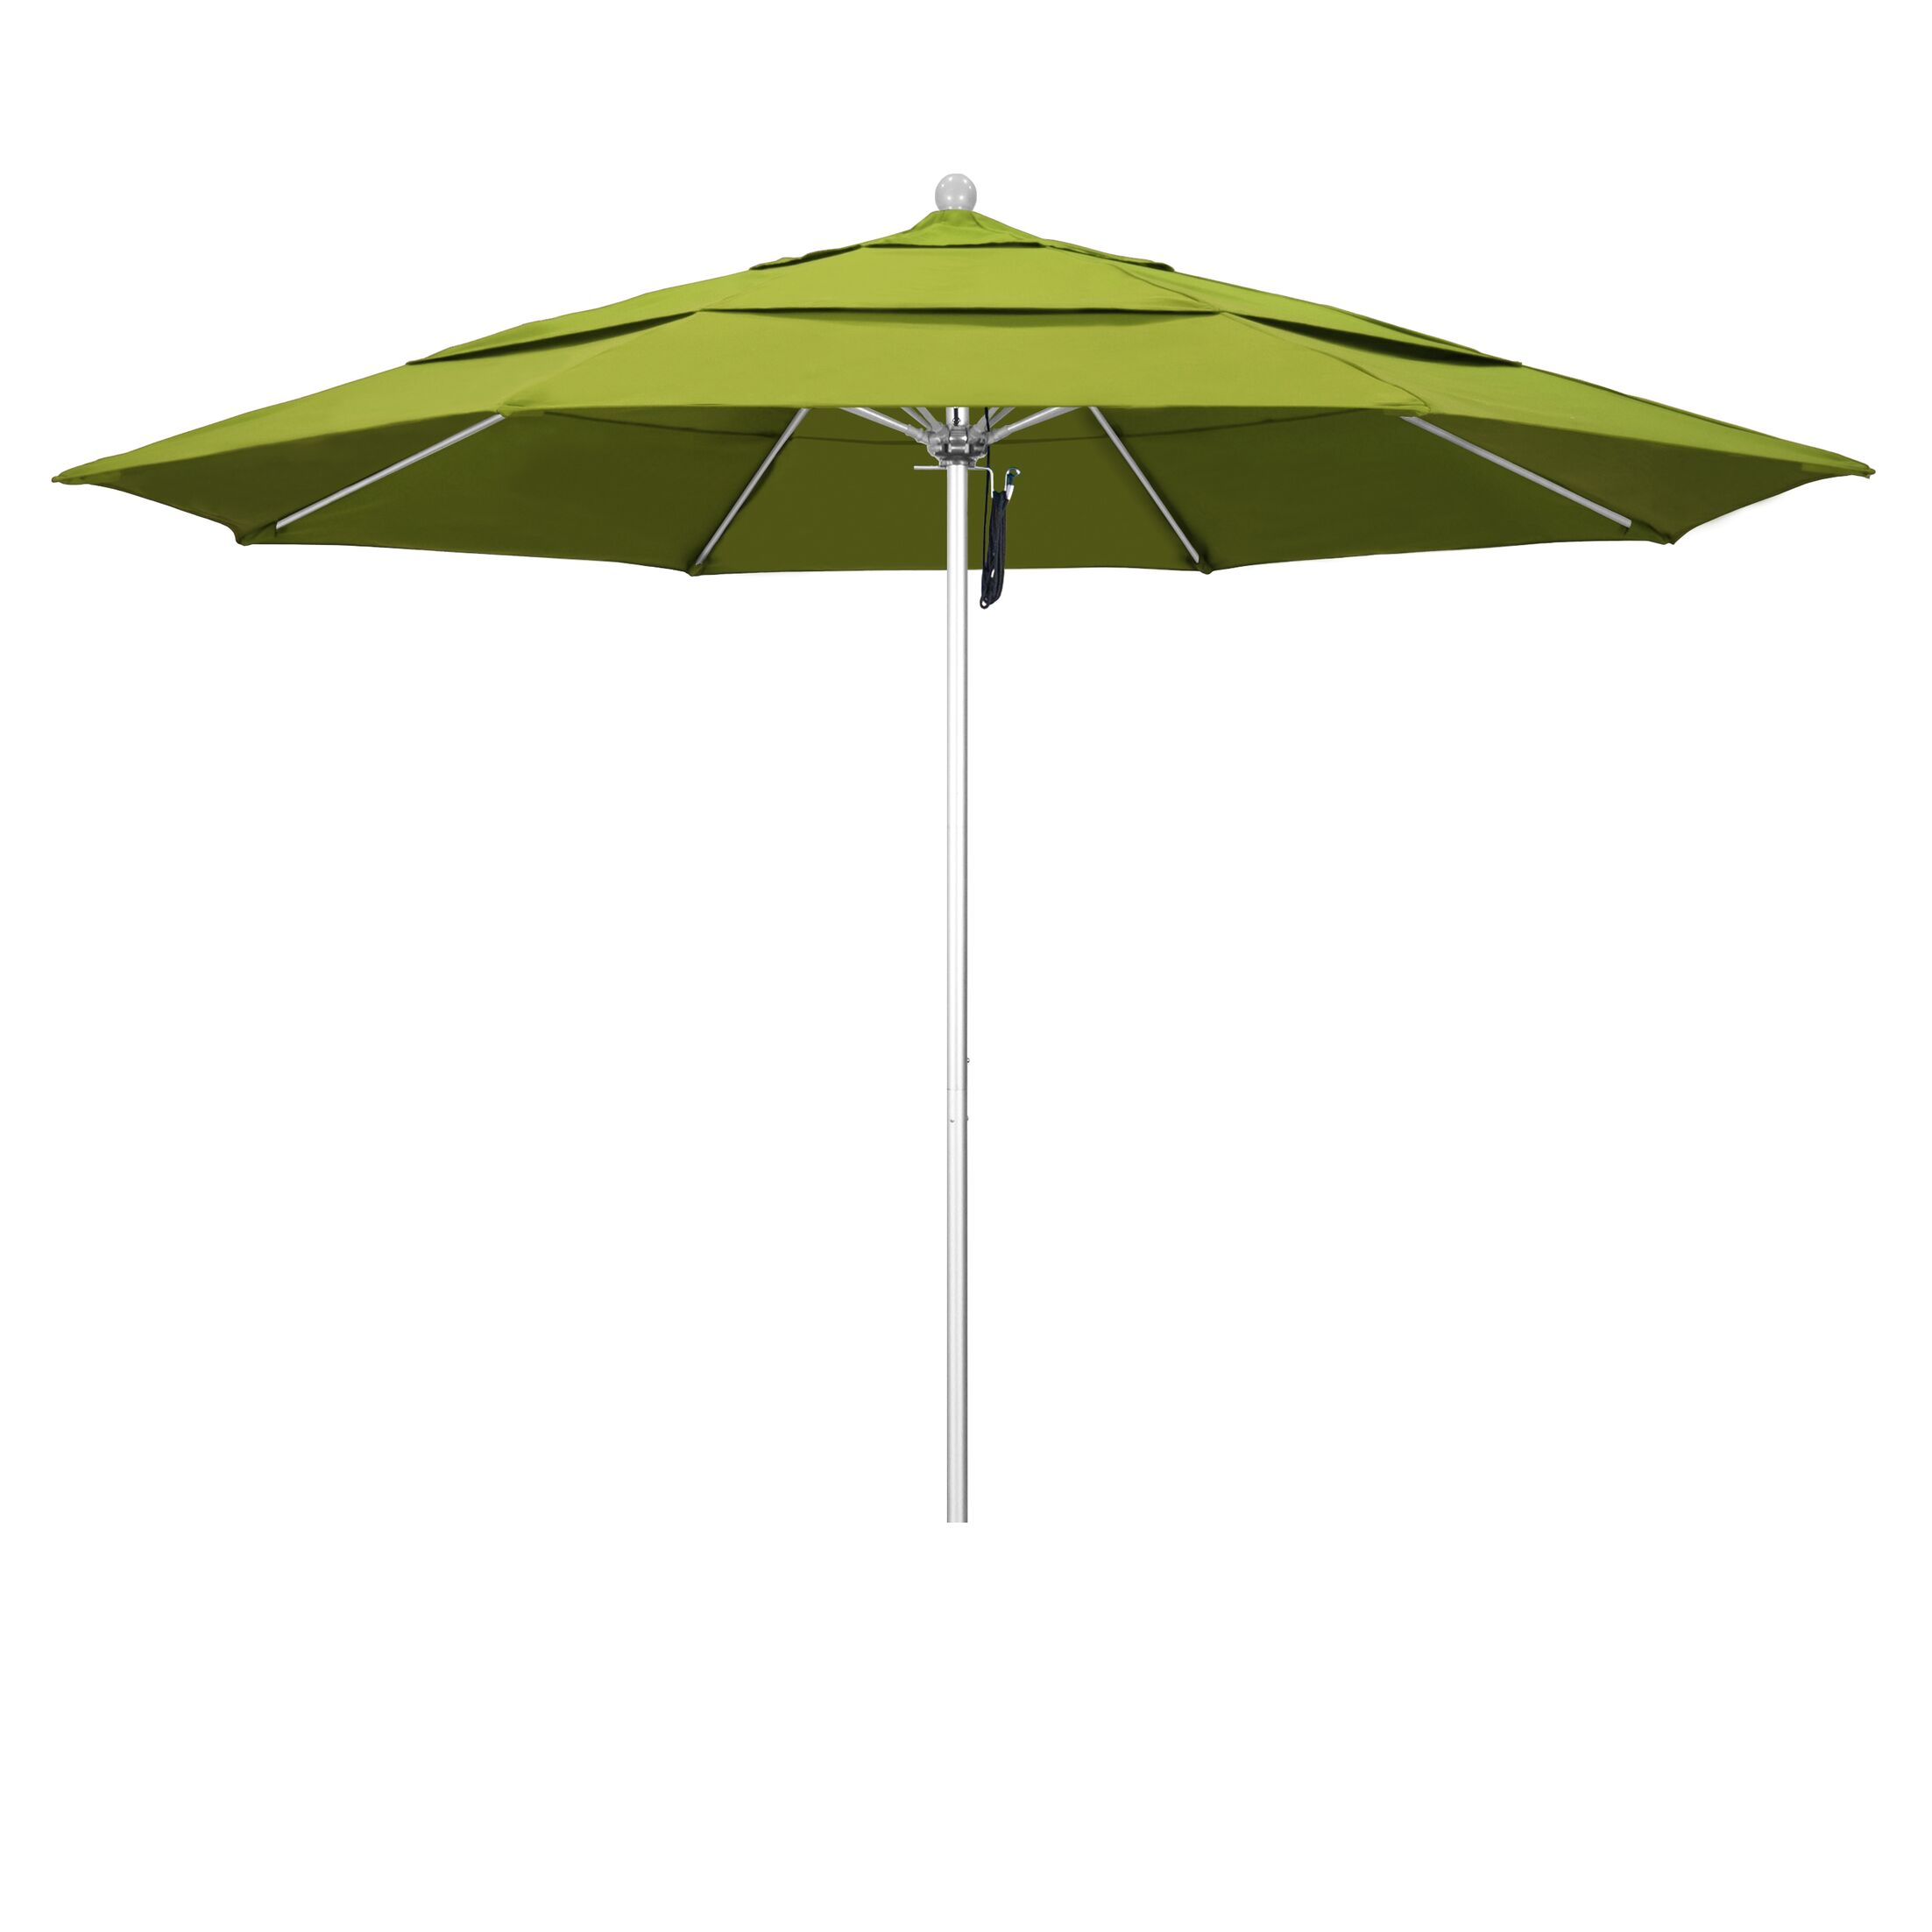 11' Market Umbrella Color: Ginkgo